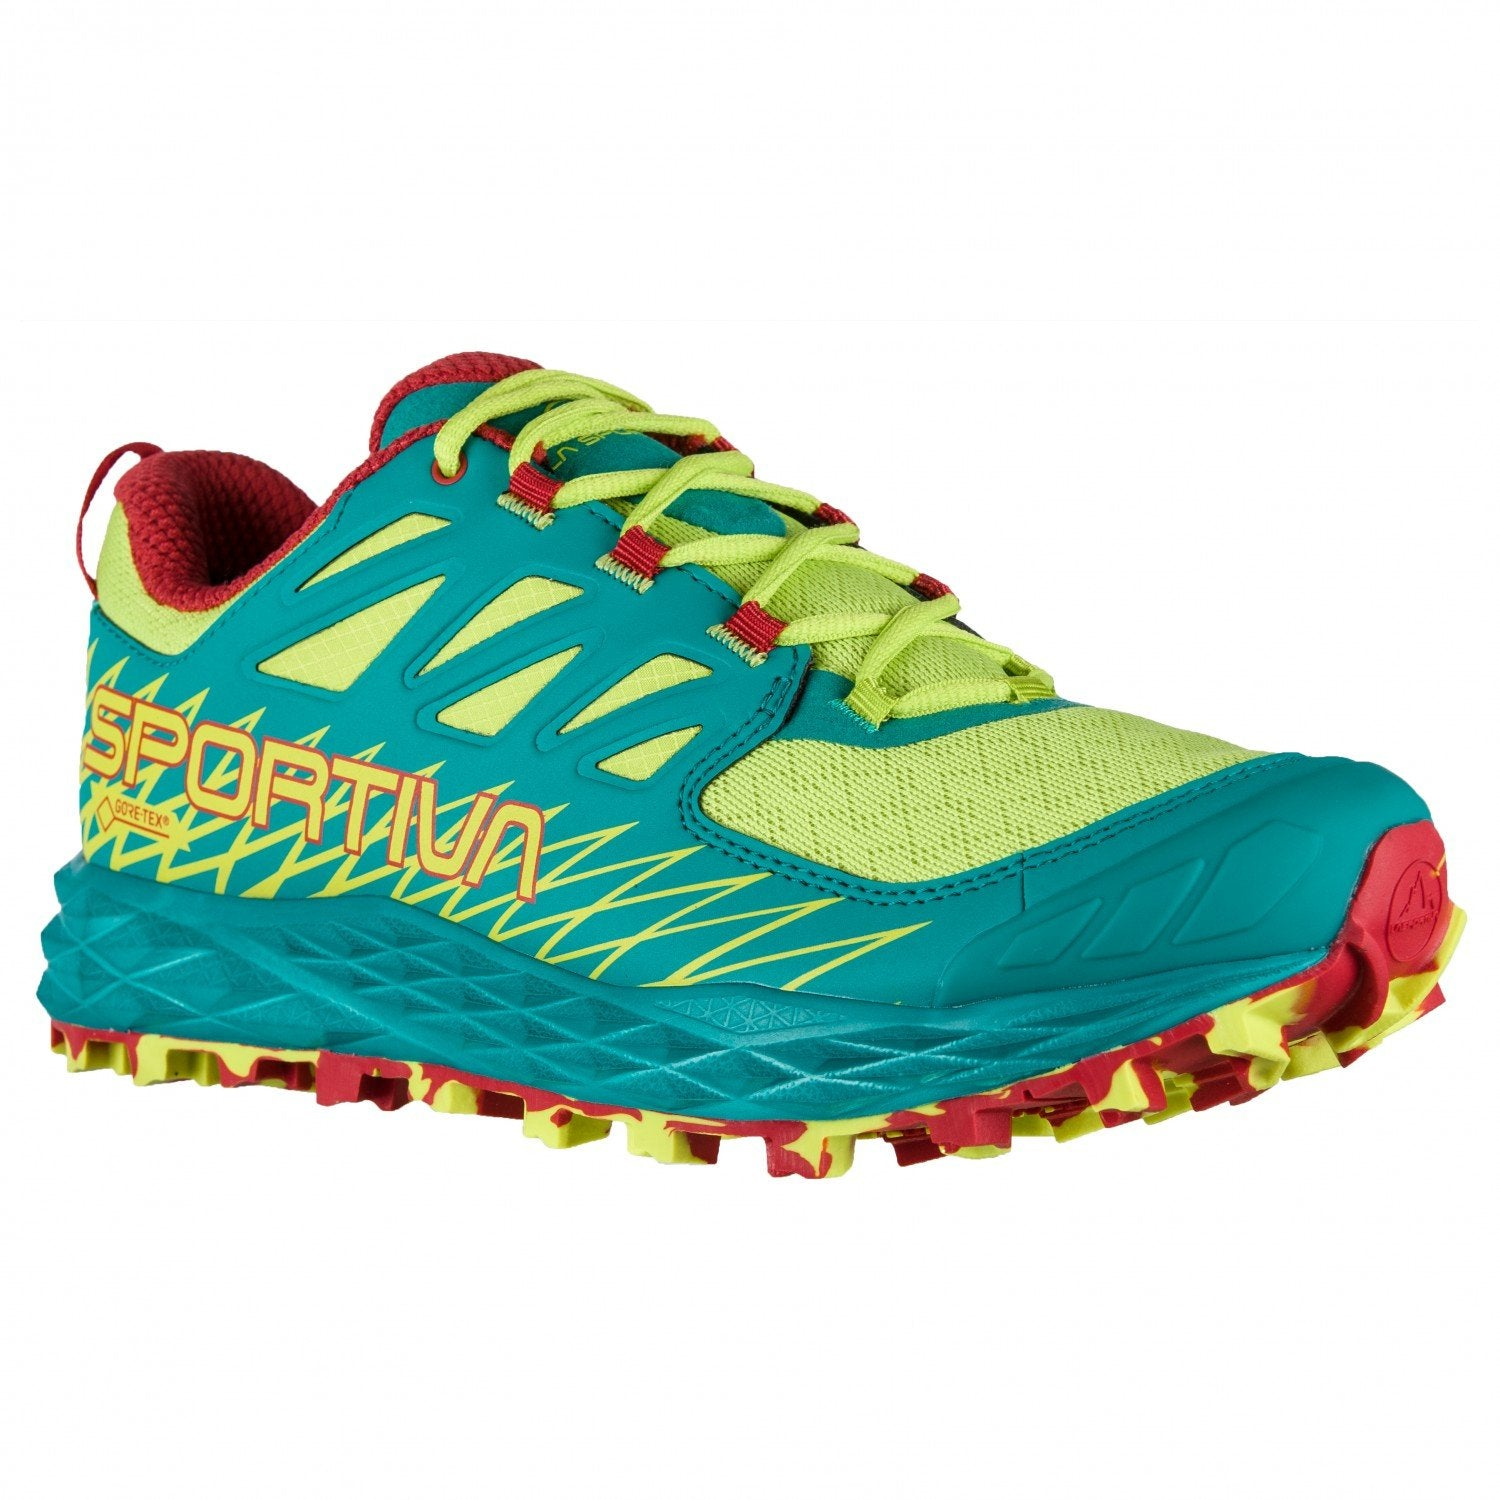 La Sportiva Lycan GTX Womens trail running shoe, outer side view, in green/blue/red colours